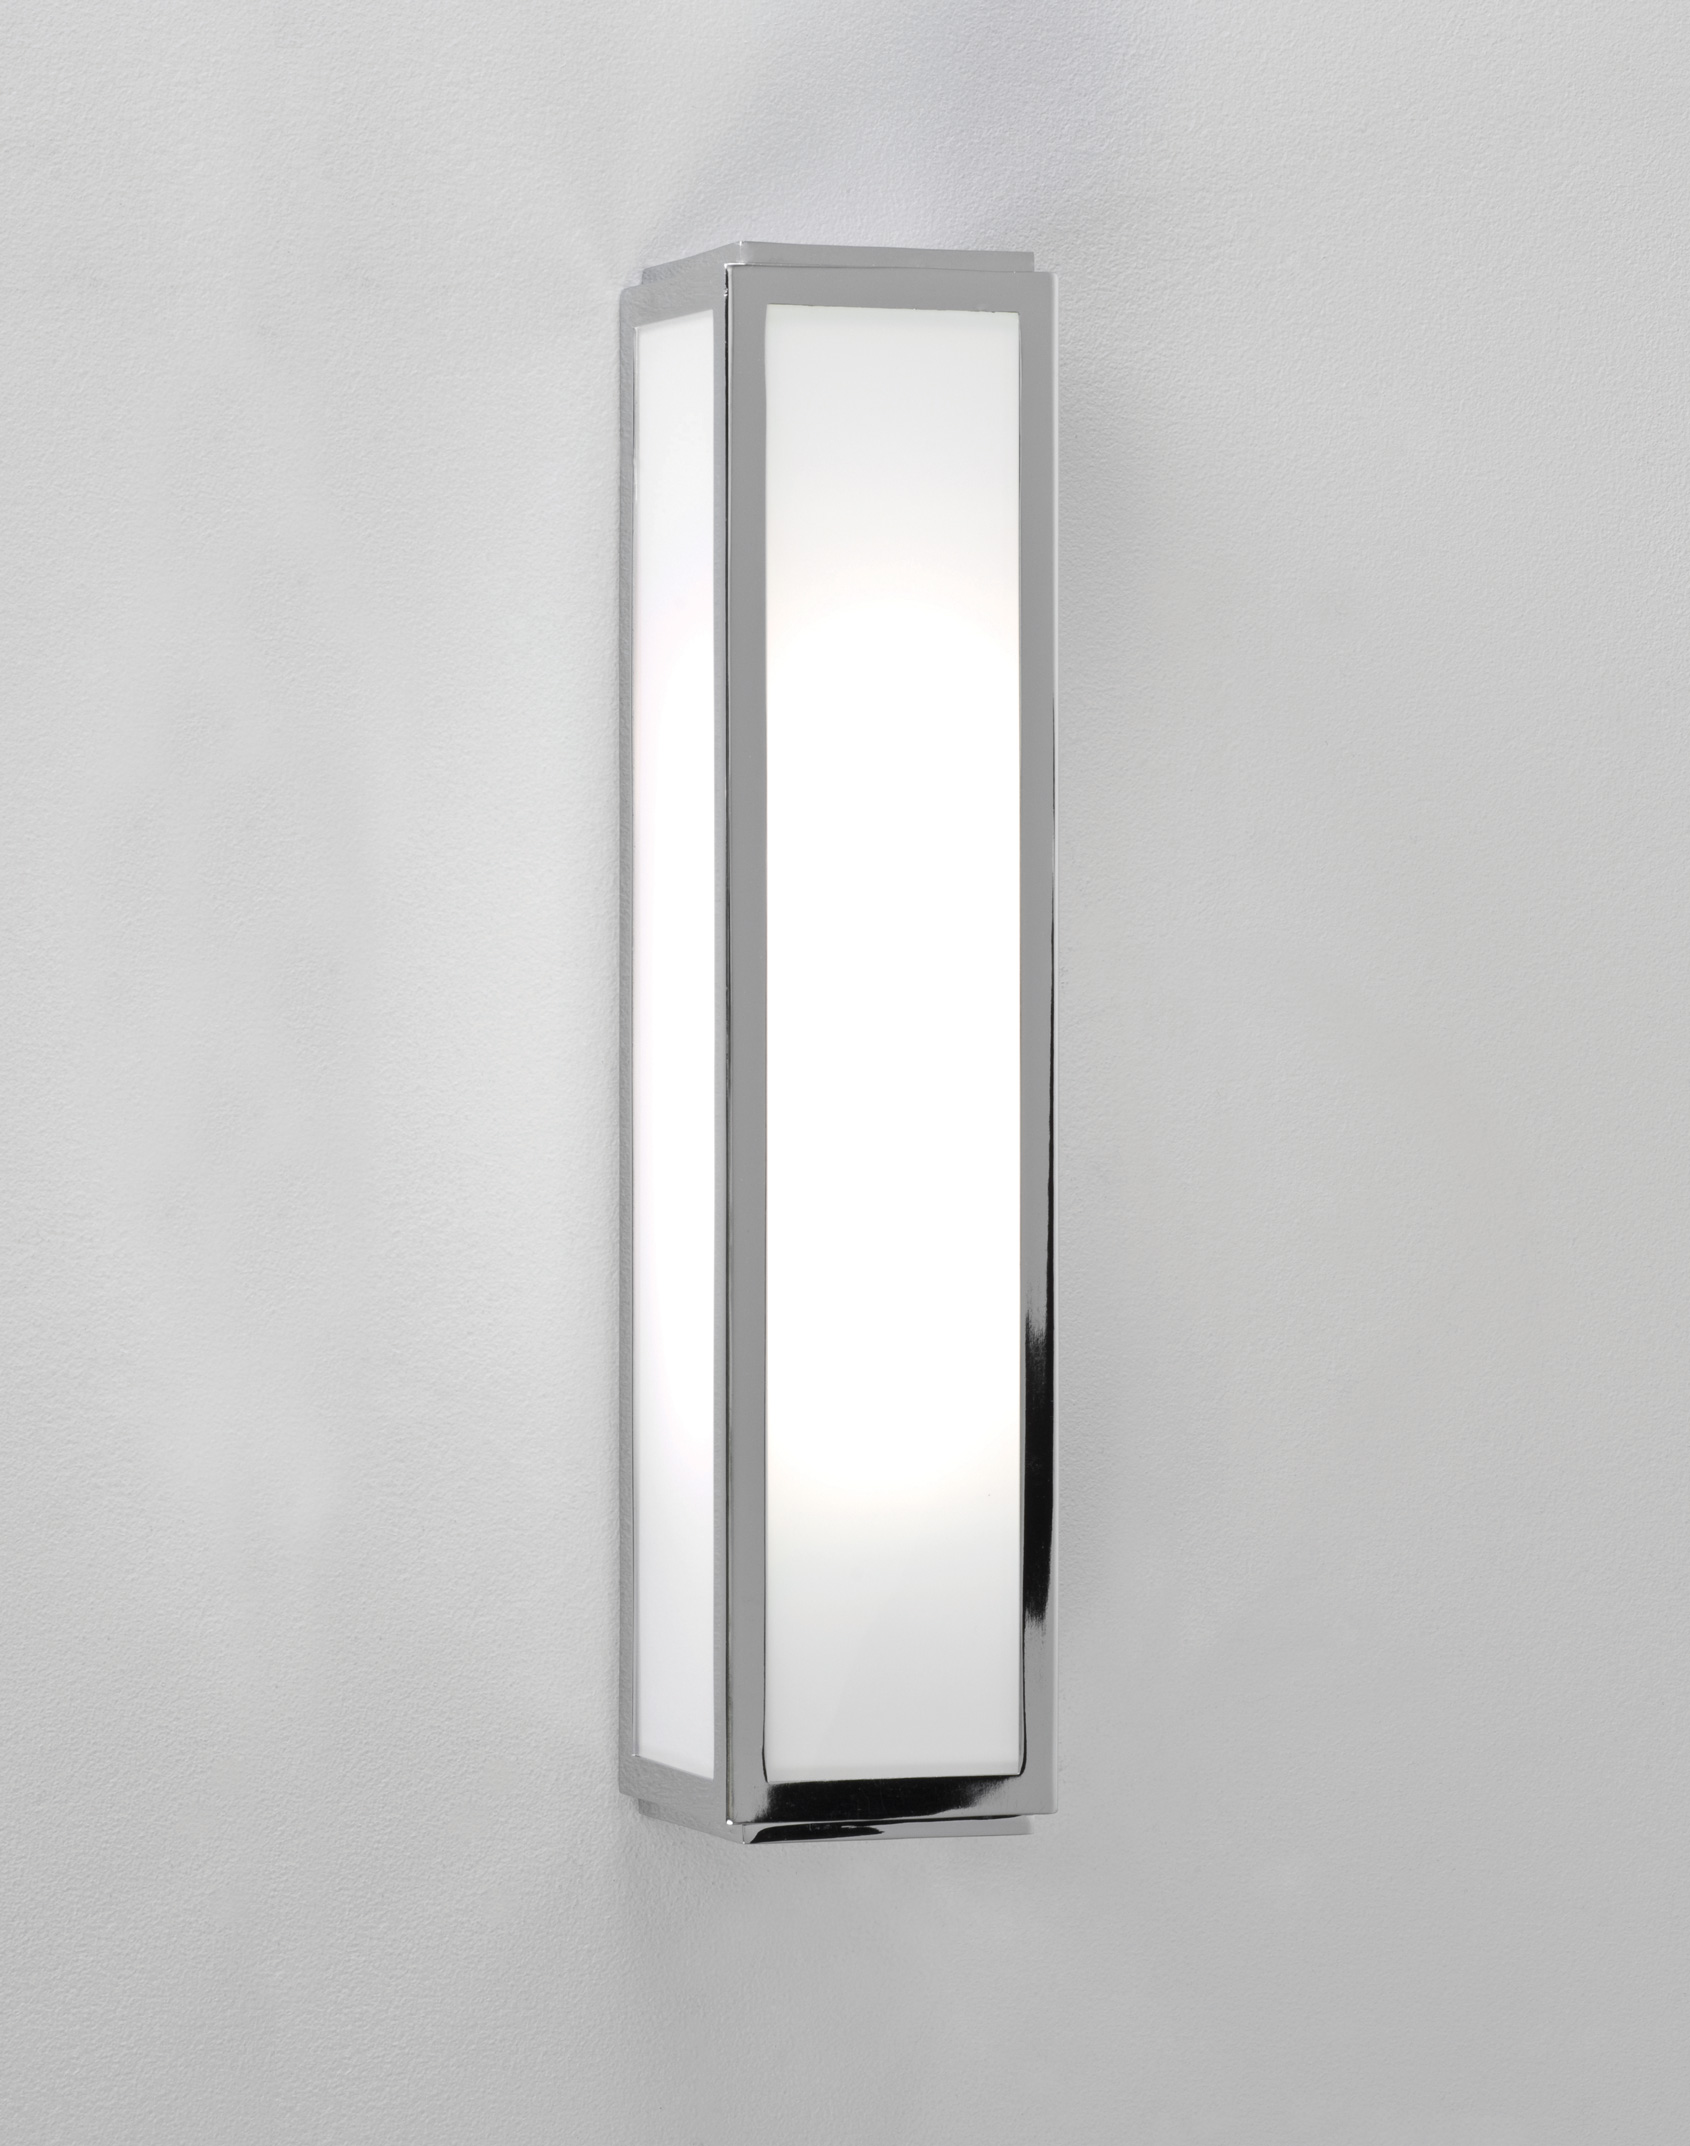 ASTRO MASHIKO 7099 Bathroom LED wall light 7.2W Samsung LED 3000K warm white